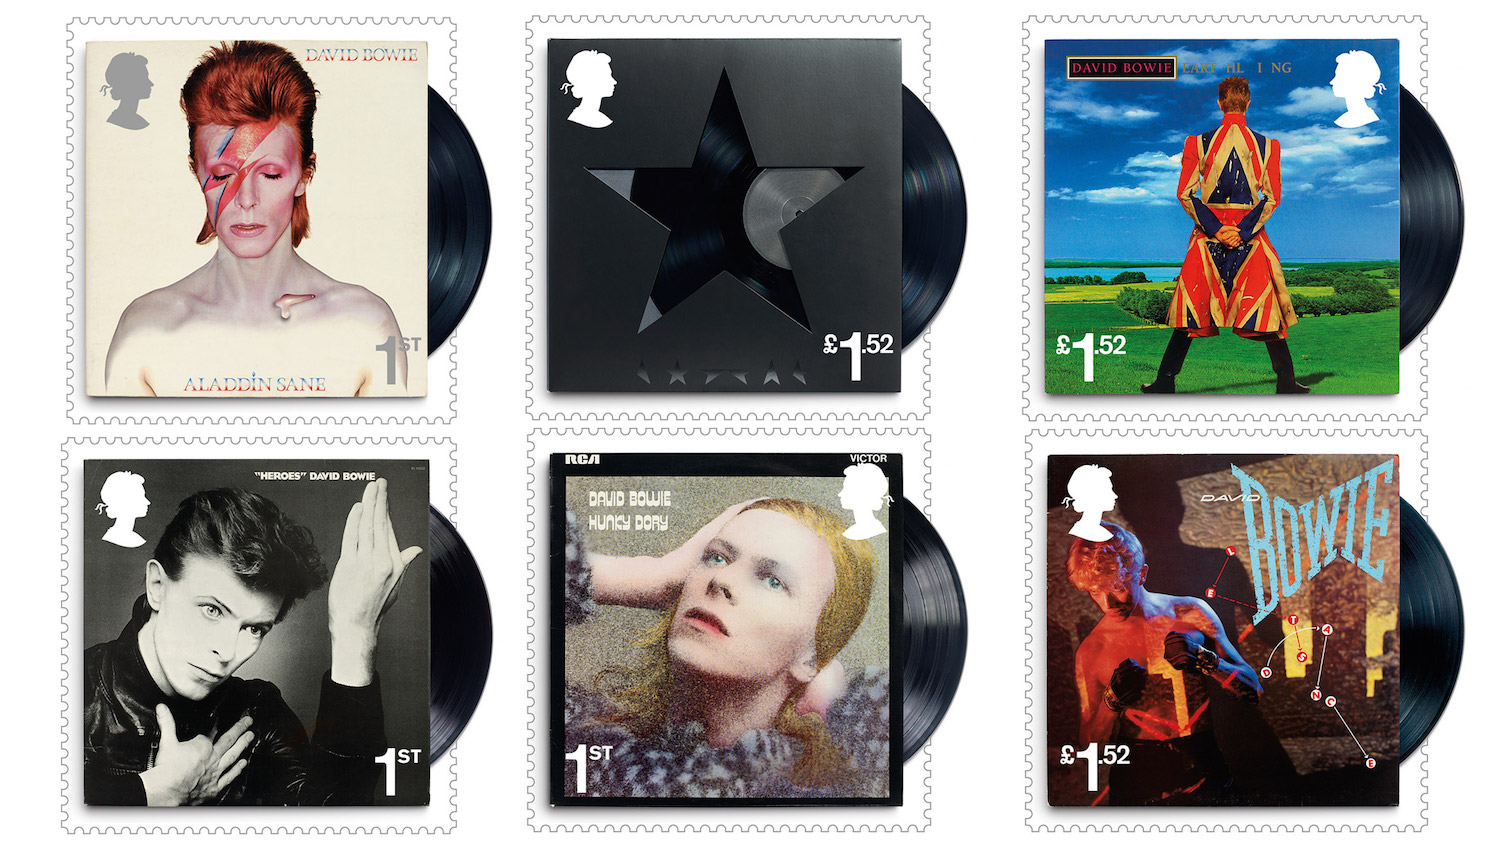 David Bowie Album Art To Be Issued As Official Royal Mail Stamps